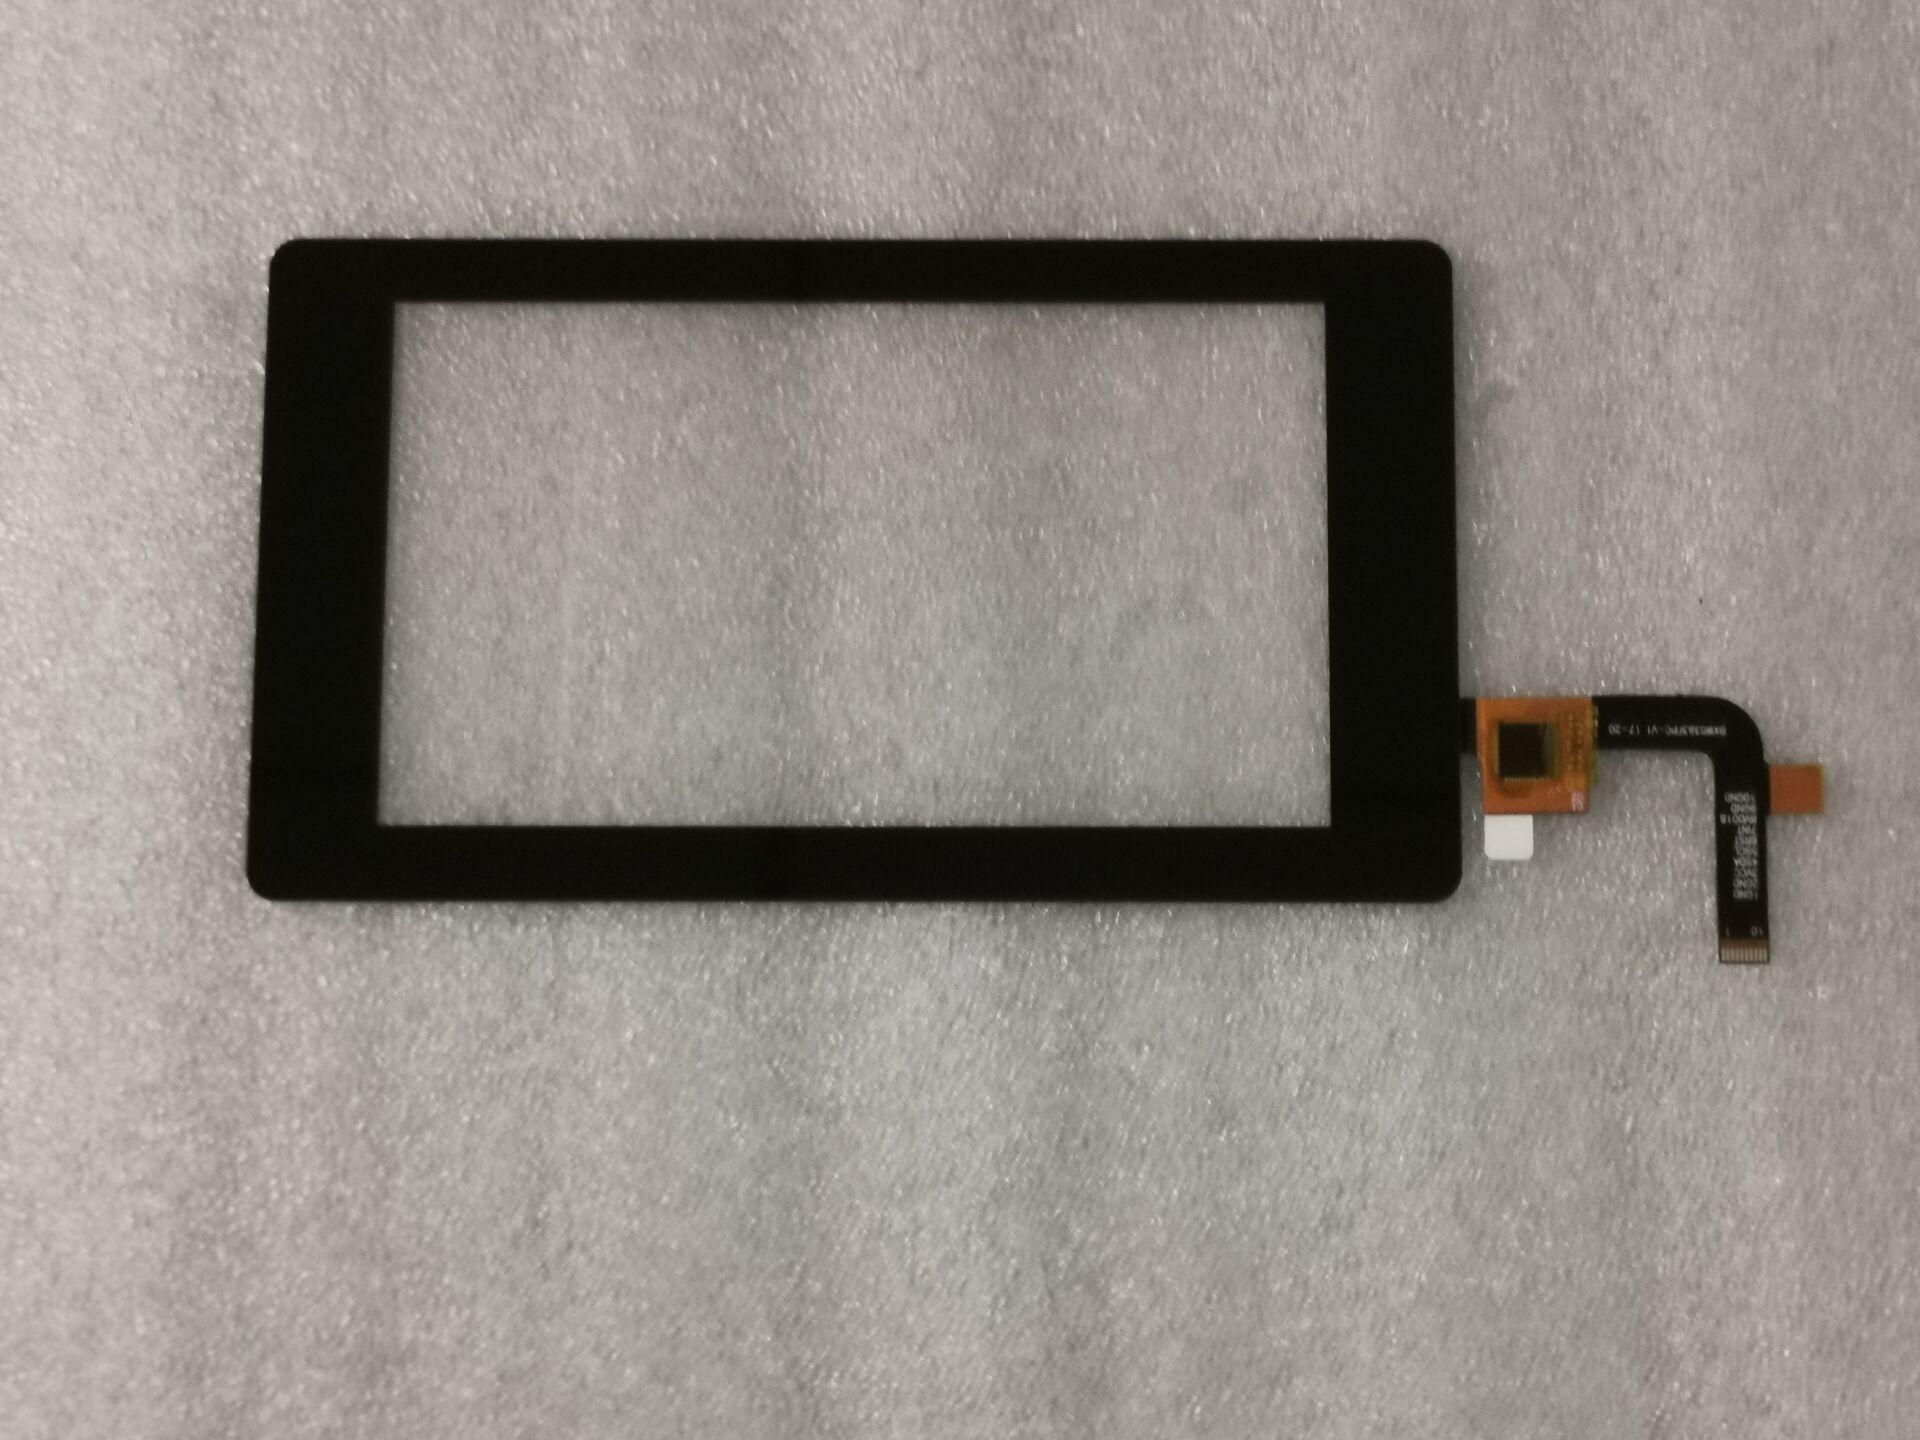 INSTRUMENT-CAPACITIVE-TOUCH-SCREEN-5-INCH-CAPACITIVE-TOUCH